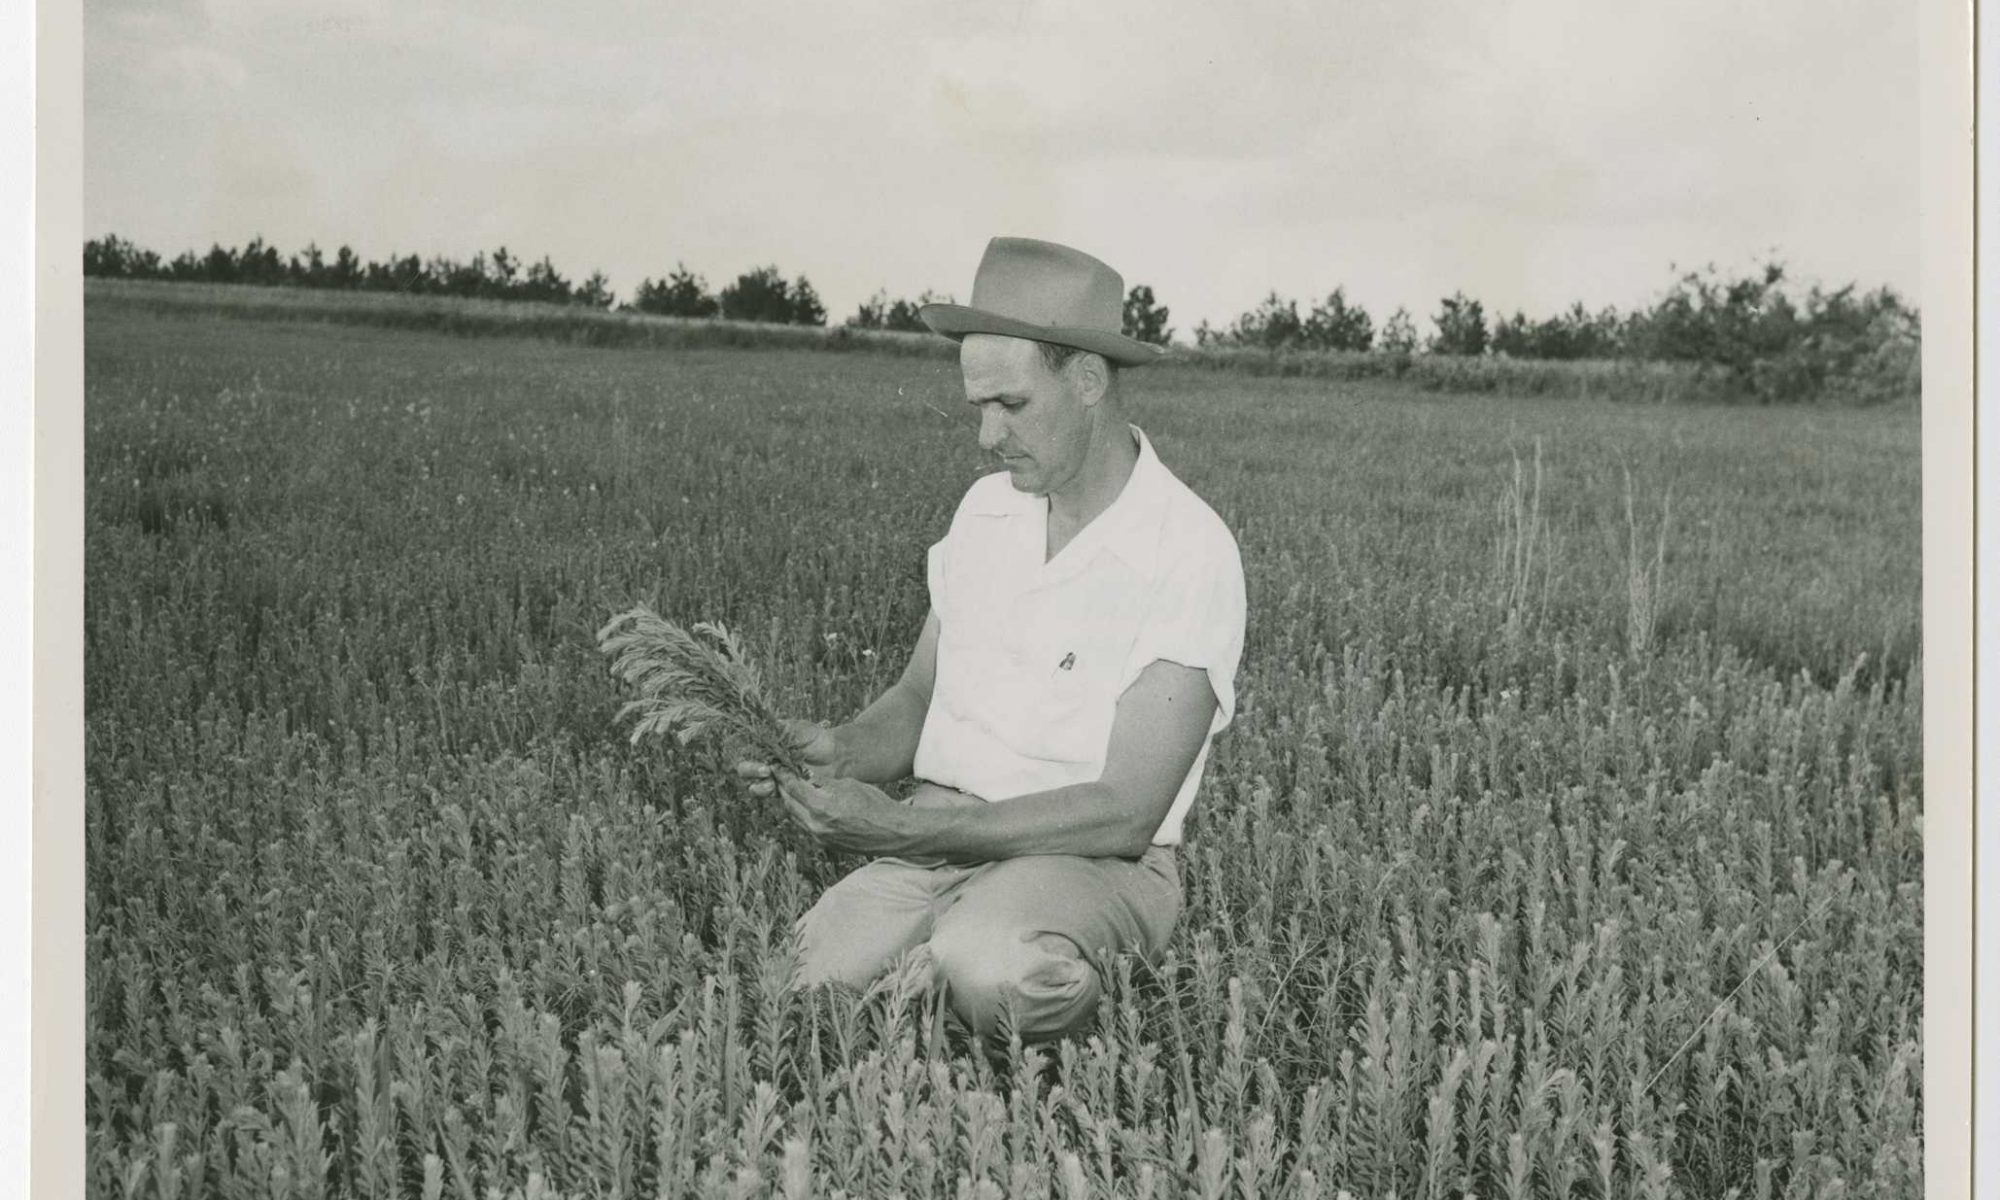 Photograph of a farmer kneeling in a field of Sericea Lespedeza for hay and pasture, Columbia County, Georgia